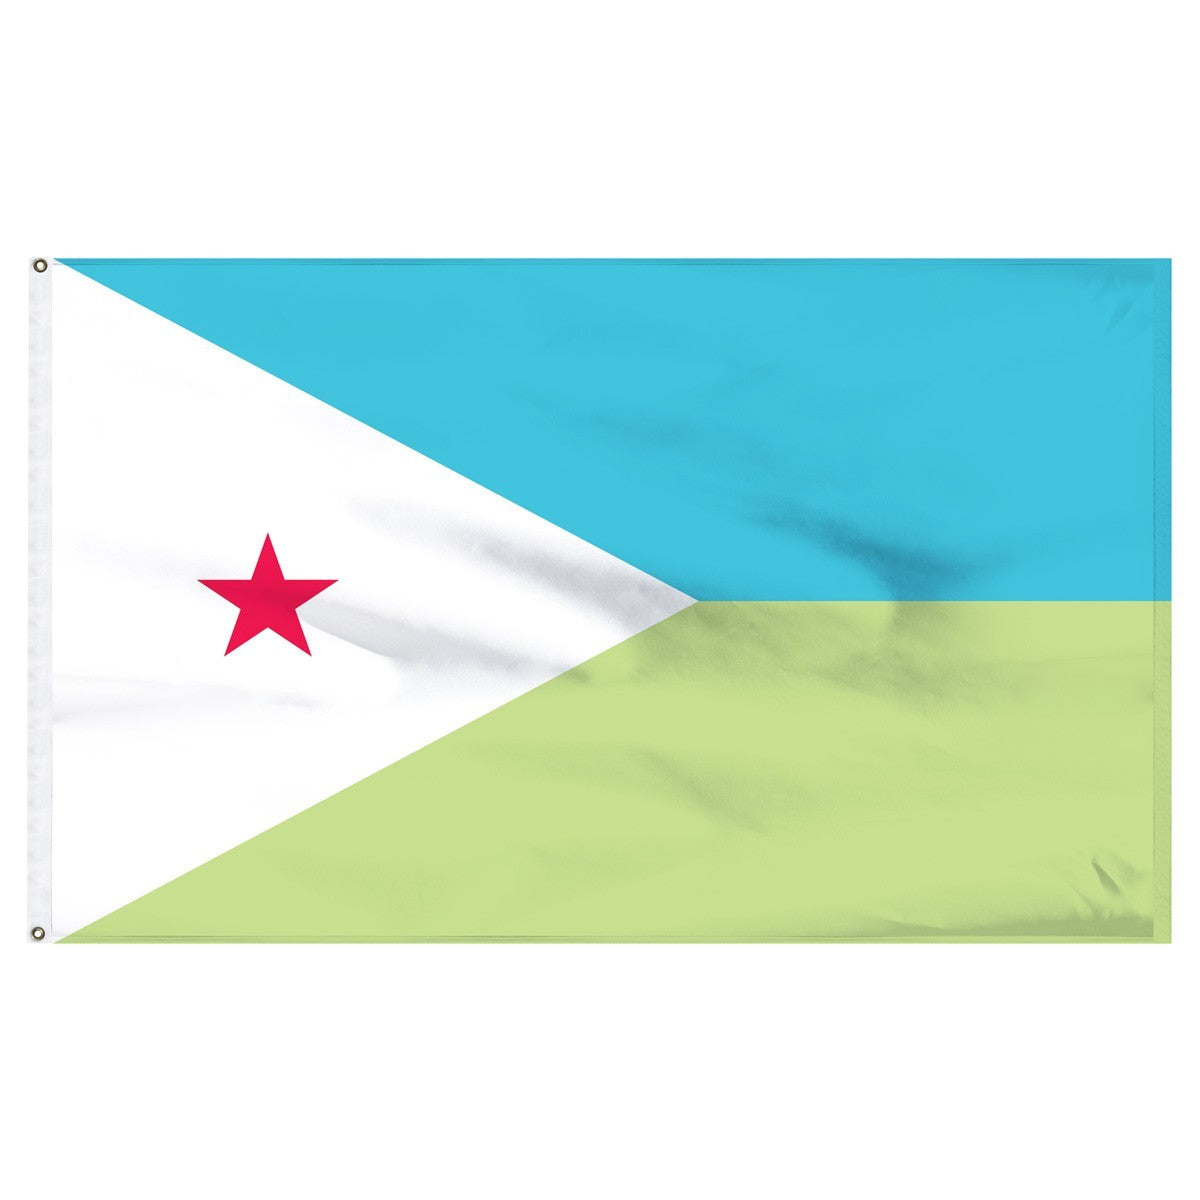 Djibouti 4' x 6' Outdoor Nylon Flag